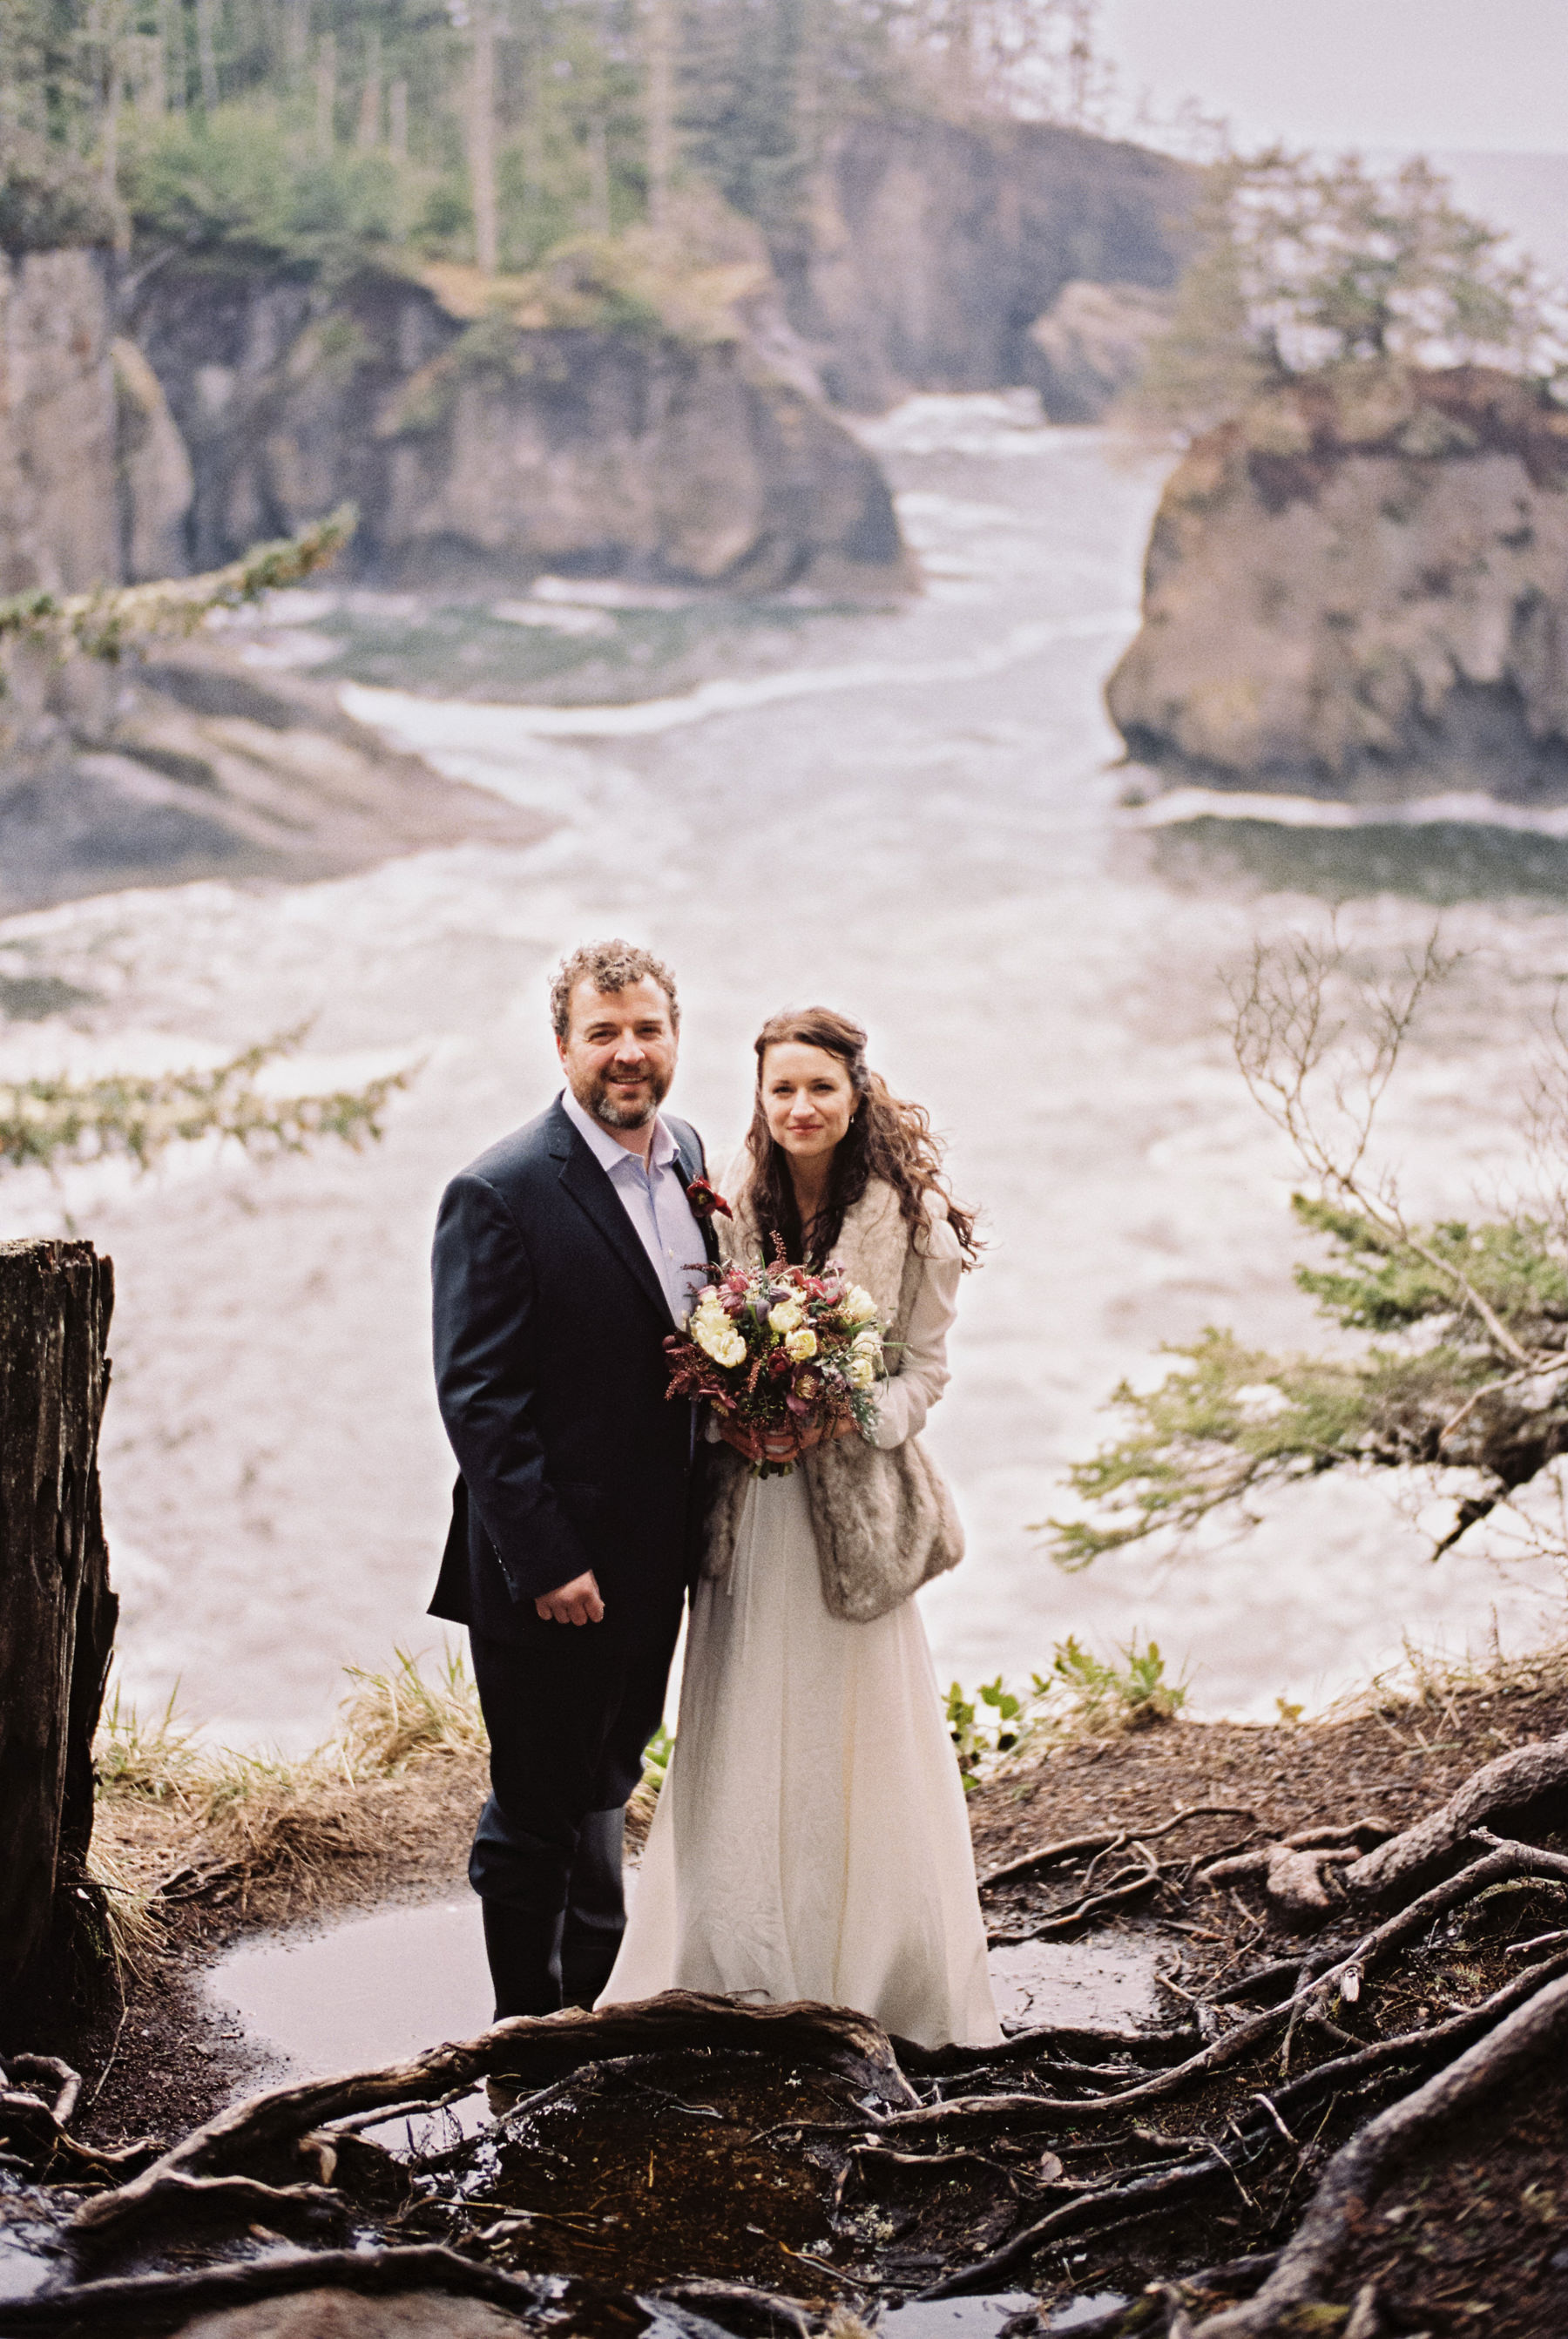 168-cloudy-pnw-elopement-on-film-at-cape-flattery-in-washington.jpg